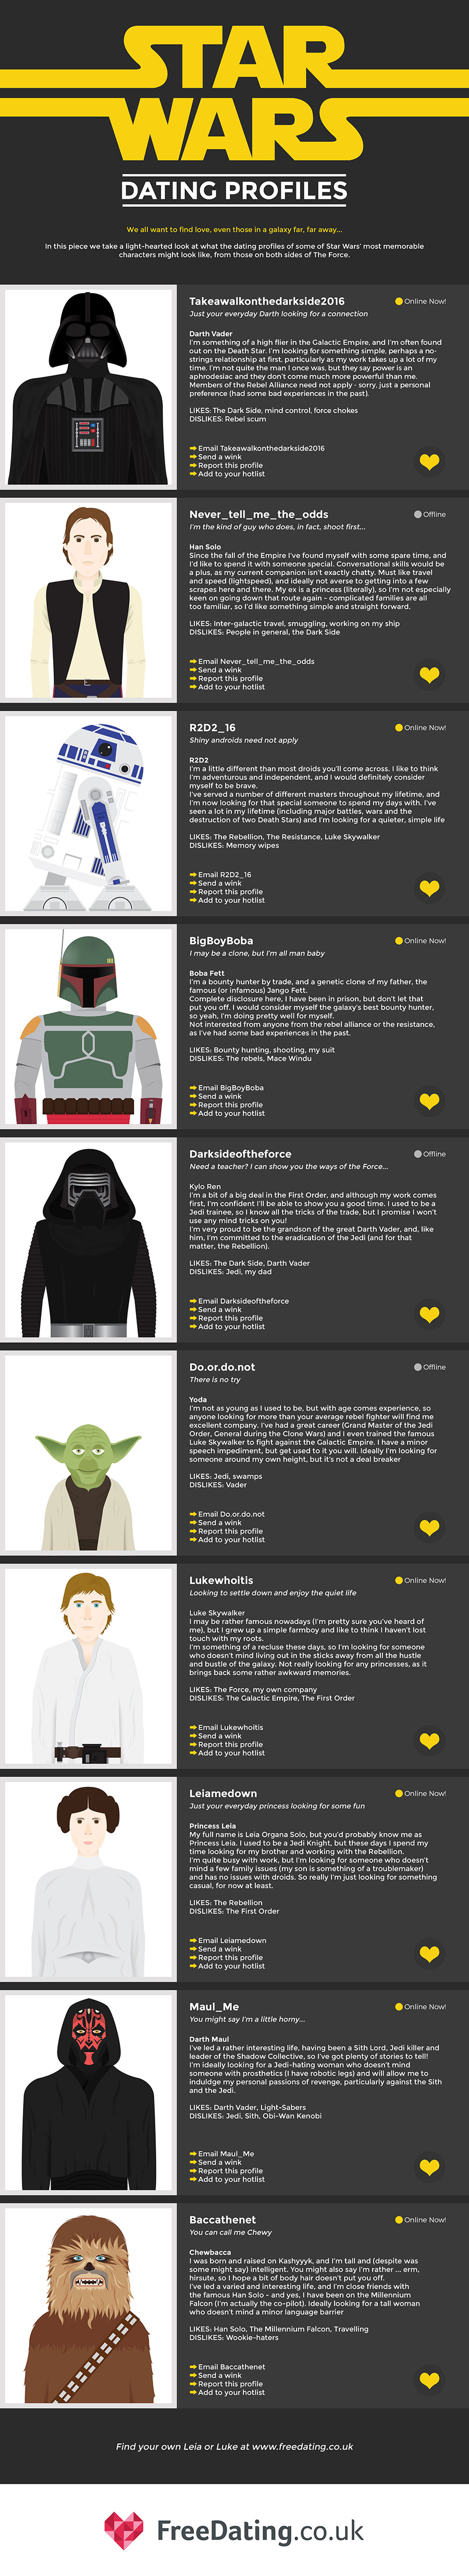 Star Wars Dating Profiles